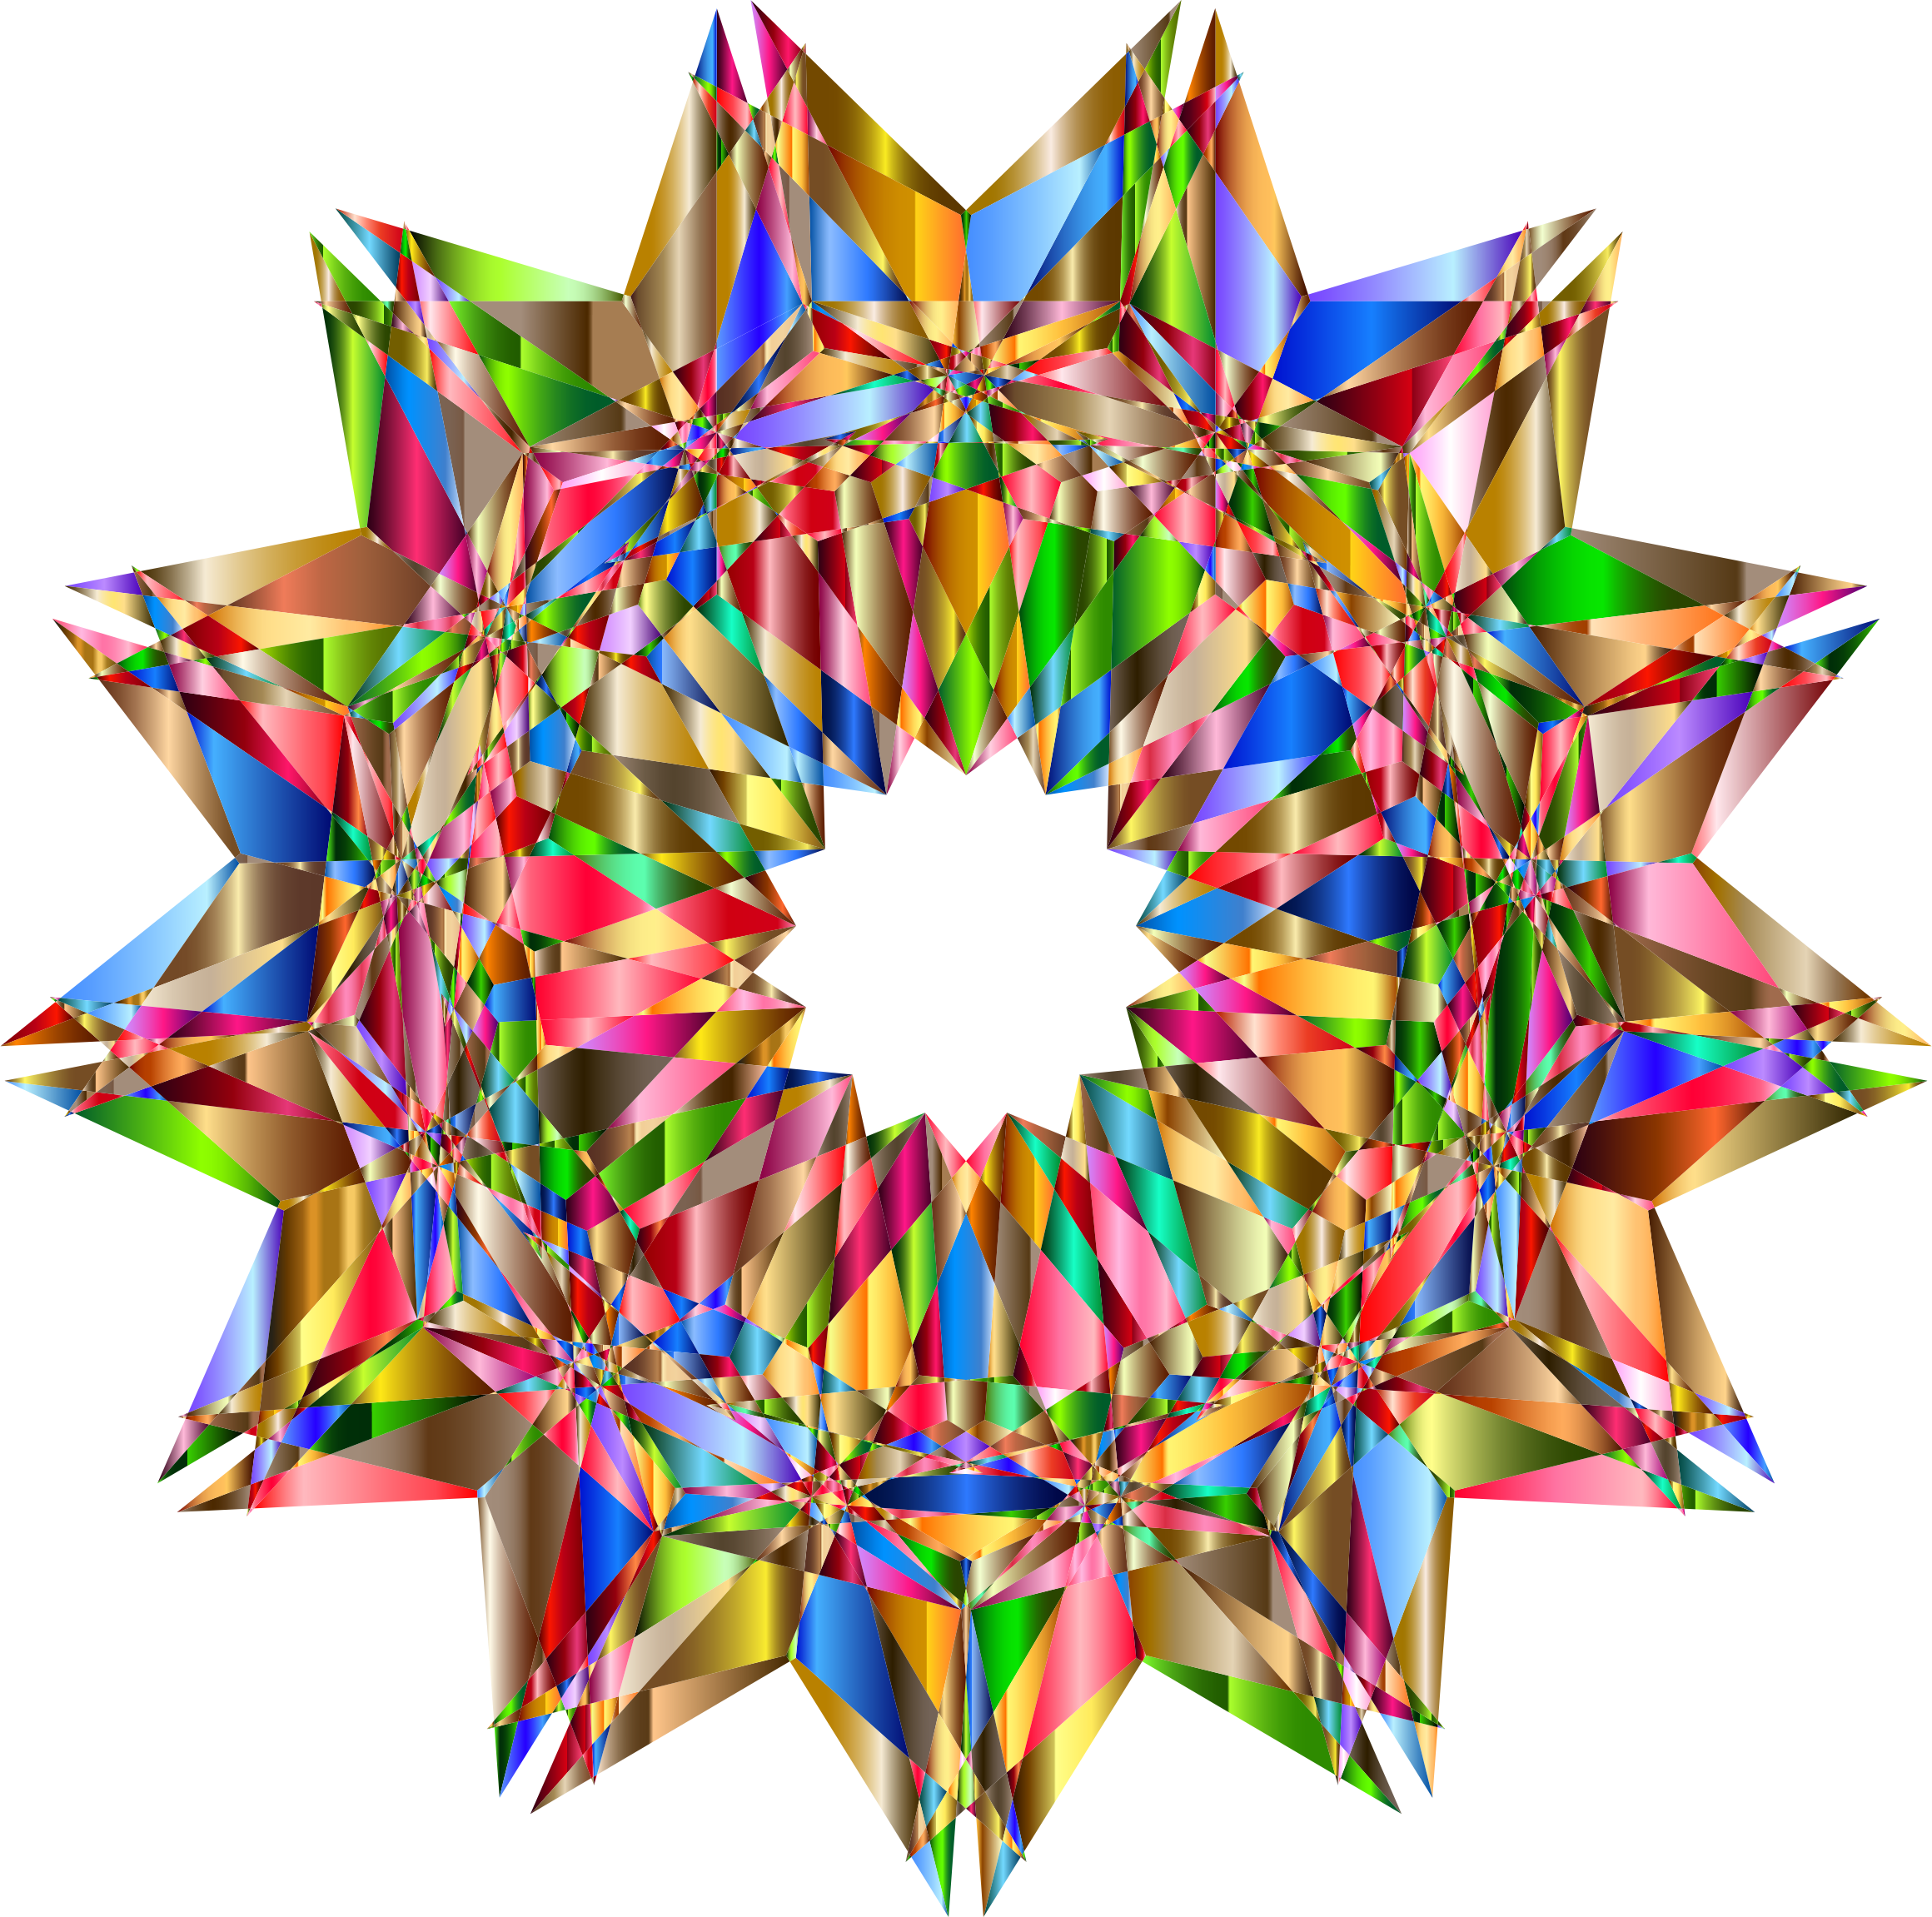 Colorful Geometric Star 8 by GDJ